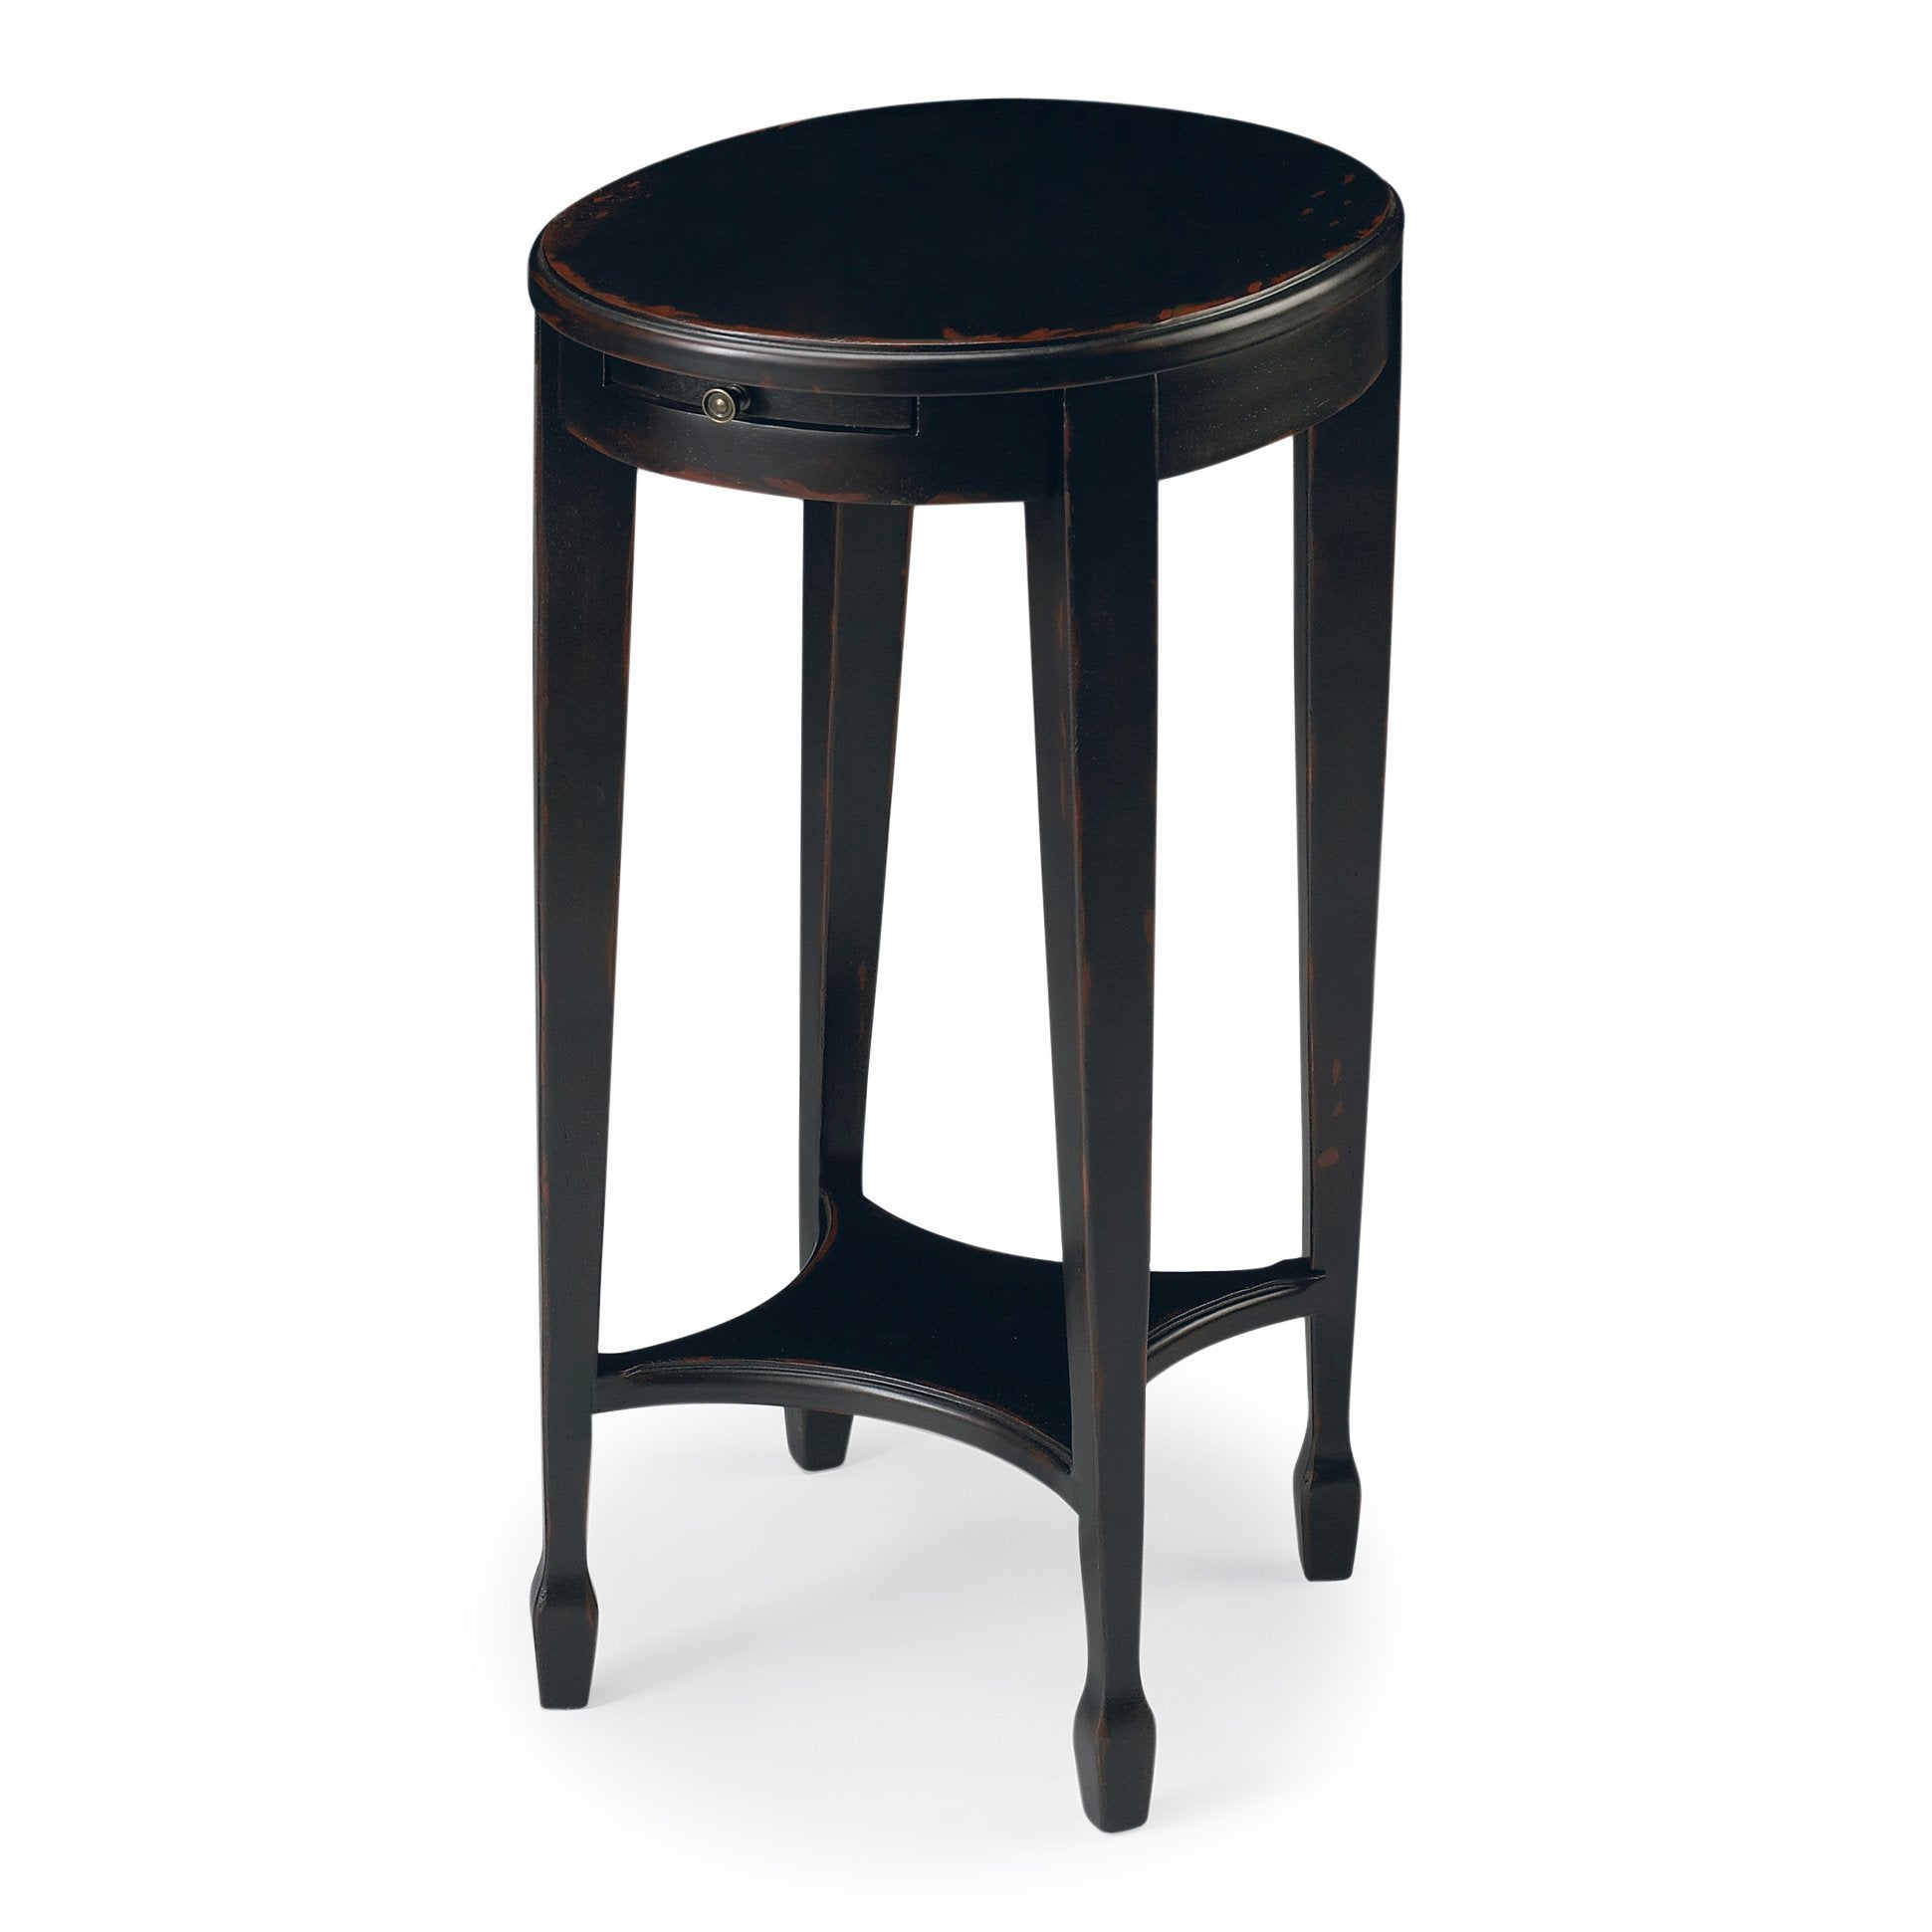 Arielle Plum Black Accent Table